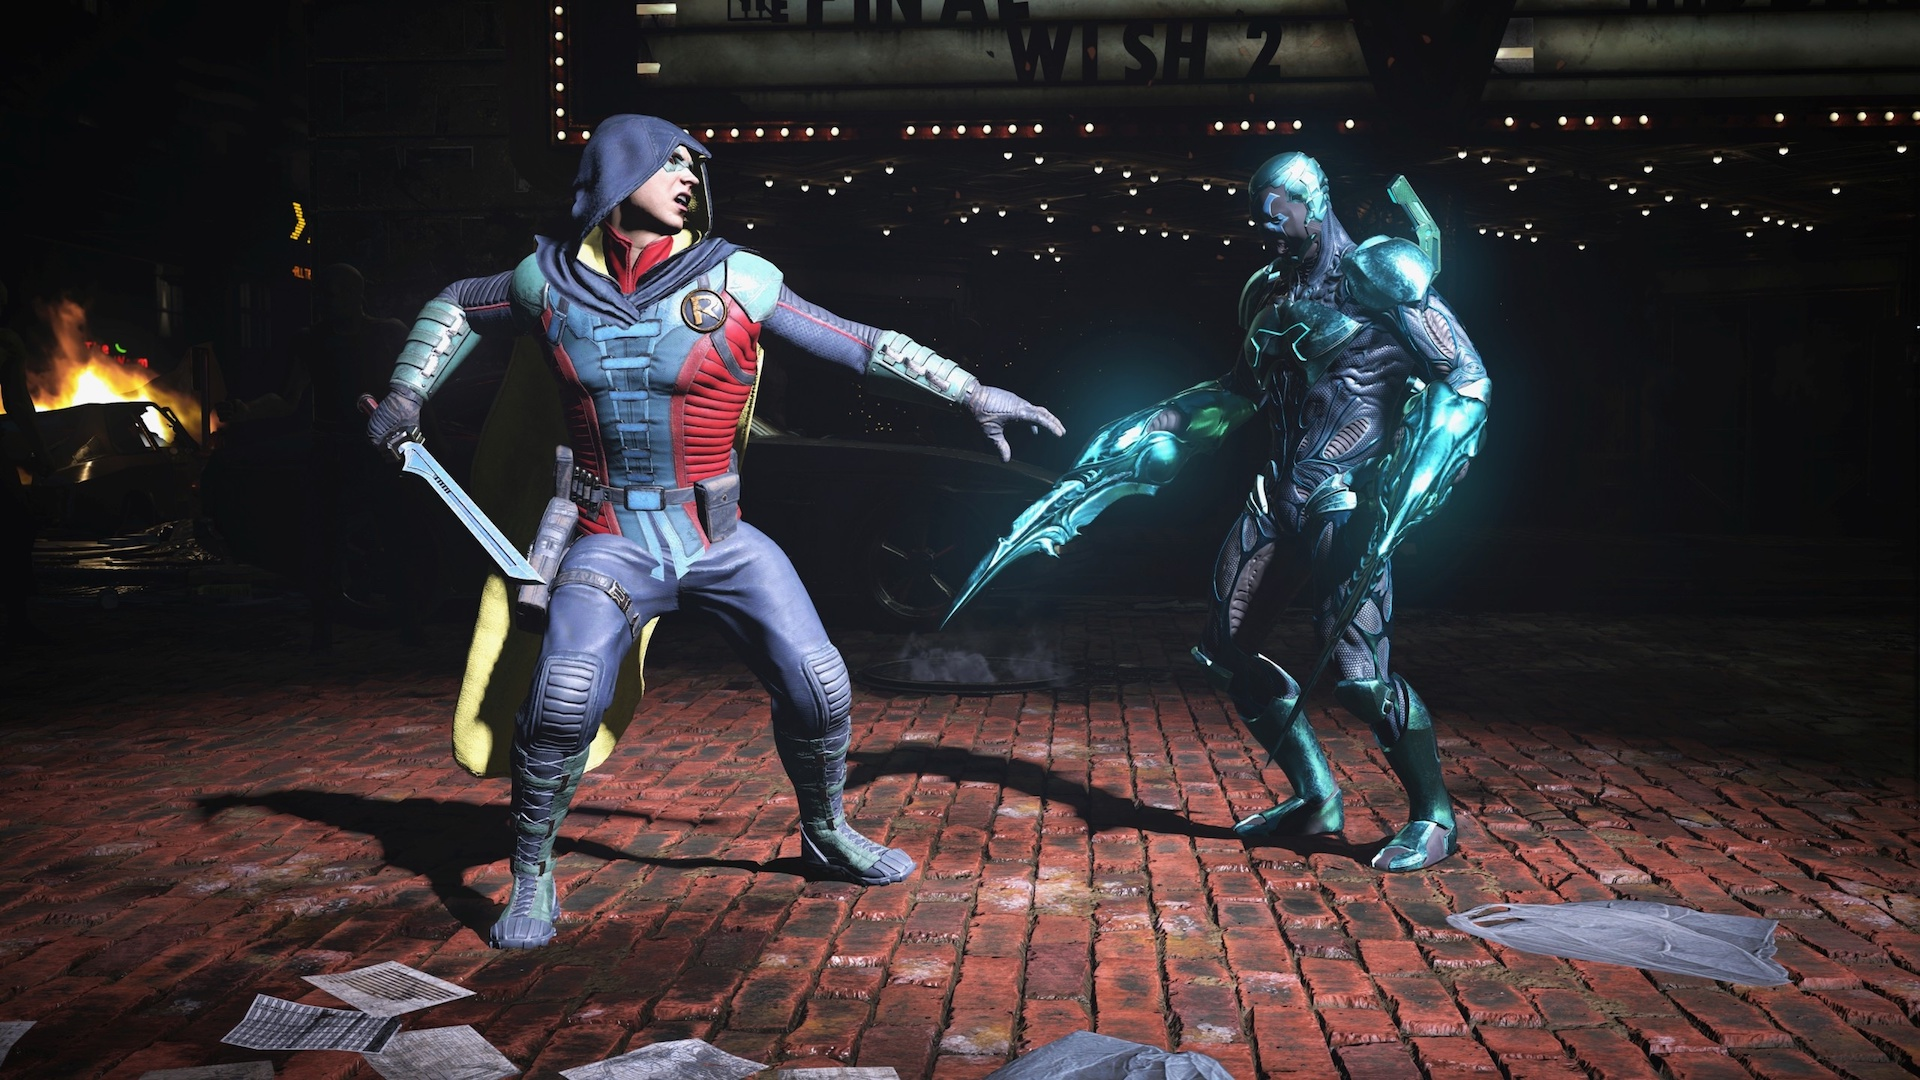 Injustice 2 takes the number one spot in United Kingdom game sales